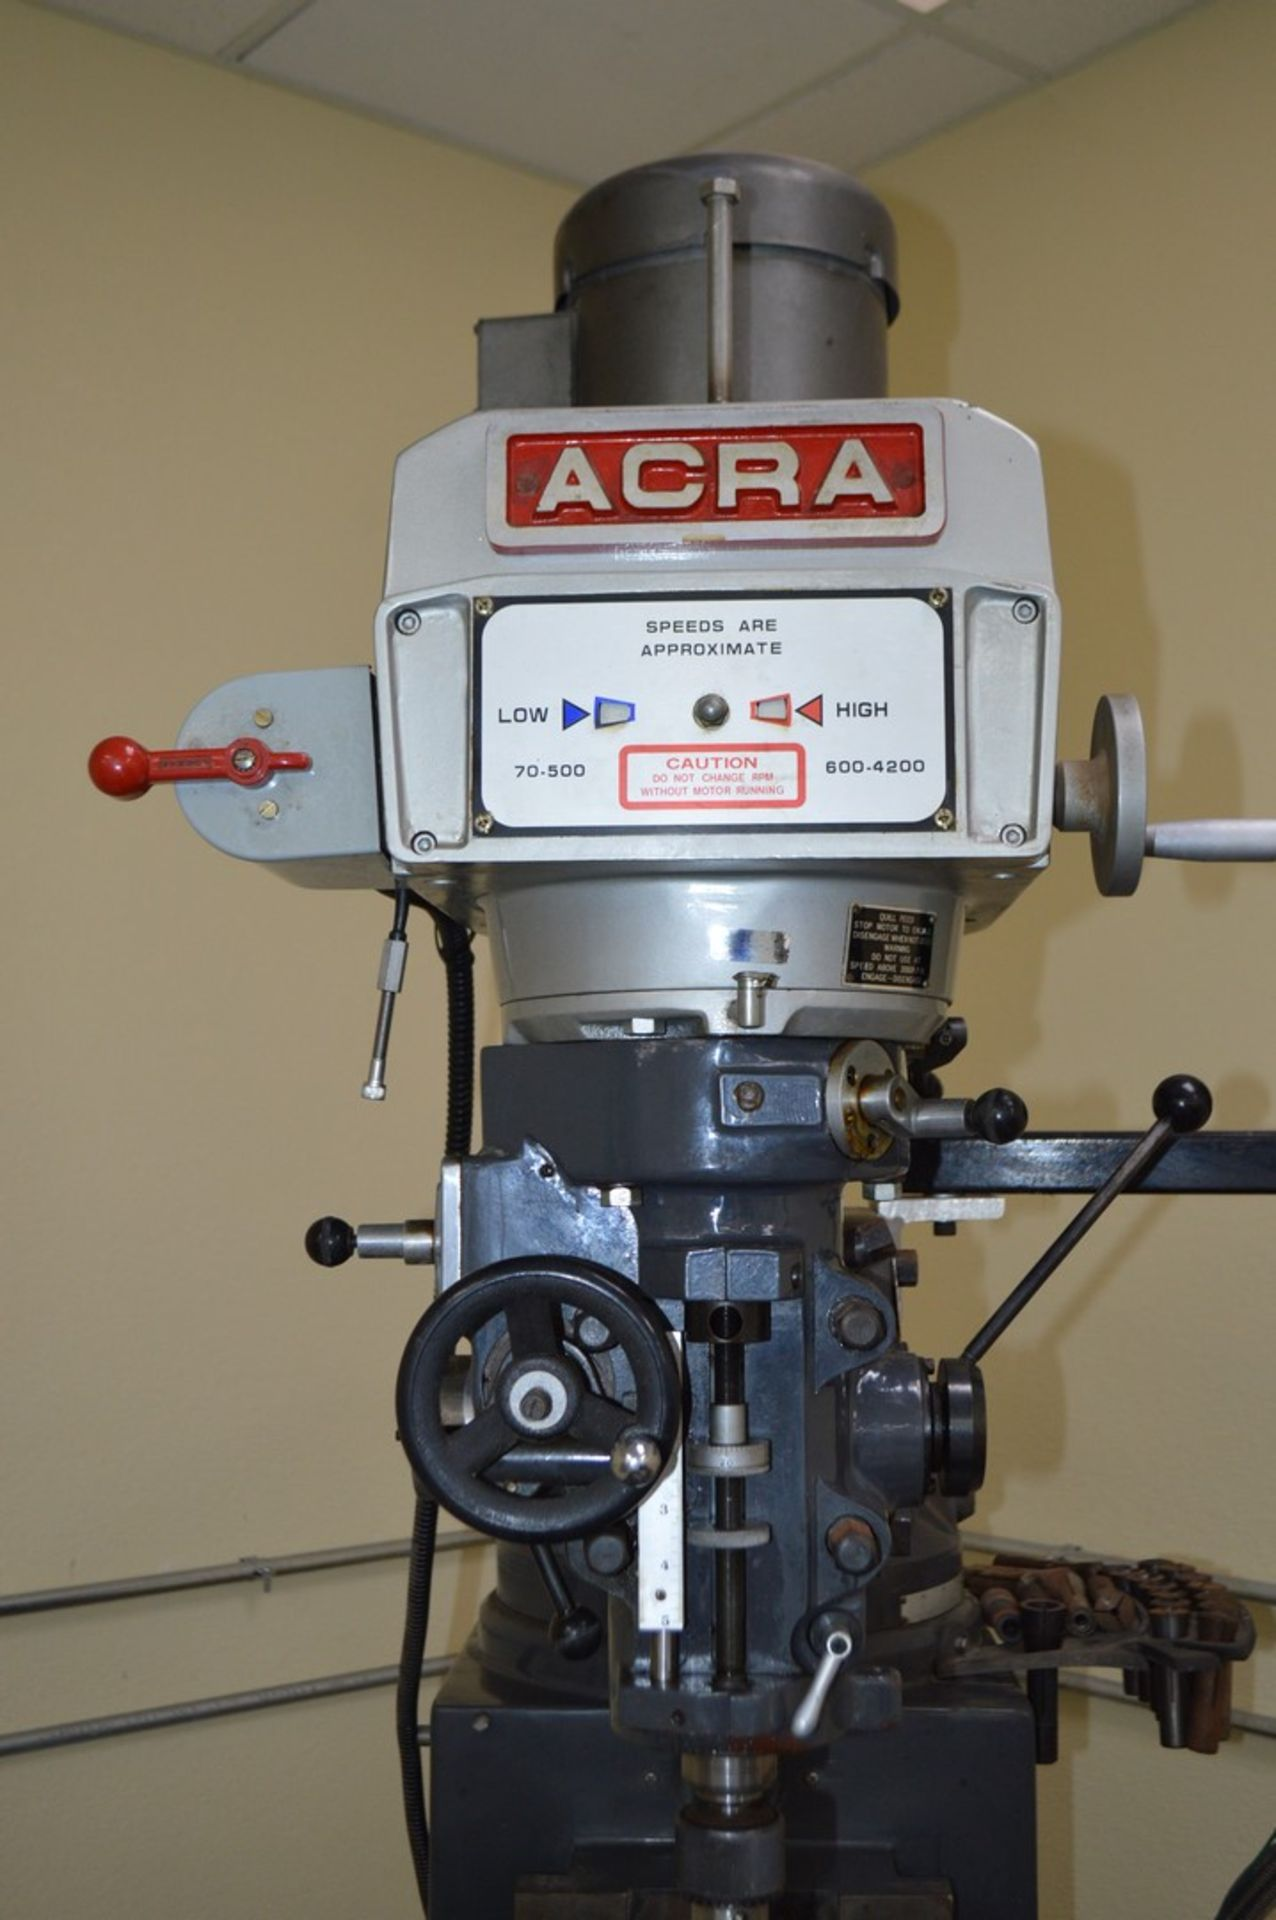 Acer 3 Axis knee mill, tilting head, 2 speed, sony magnescale DRO, Milling setup set, table - Image 2 of 10